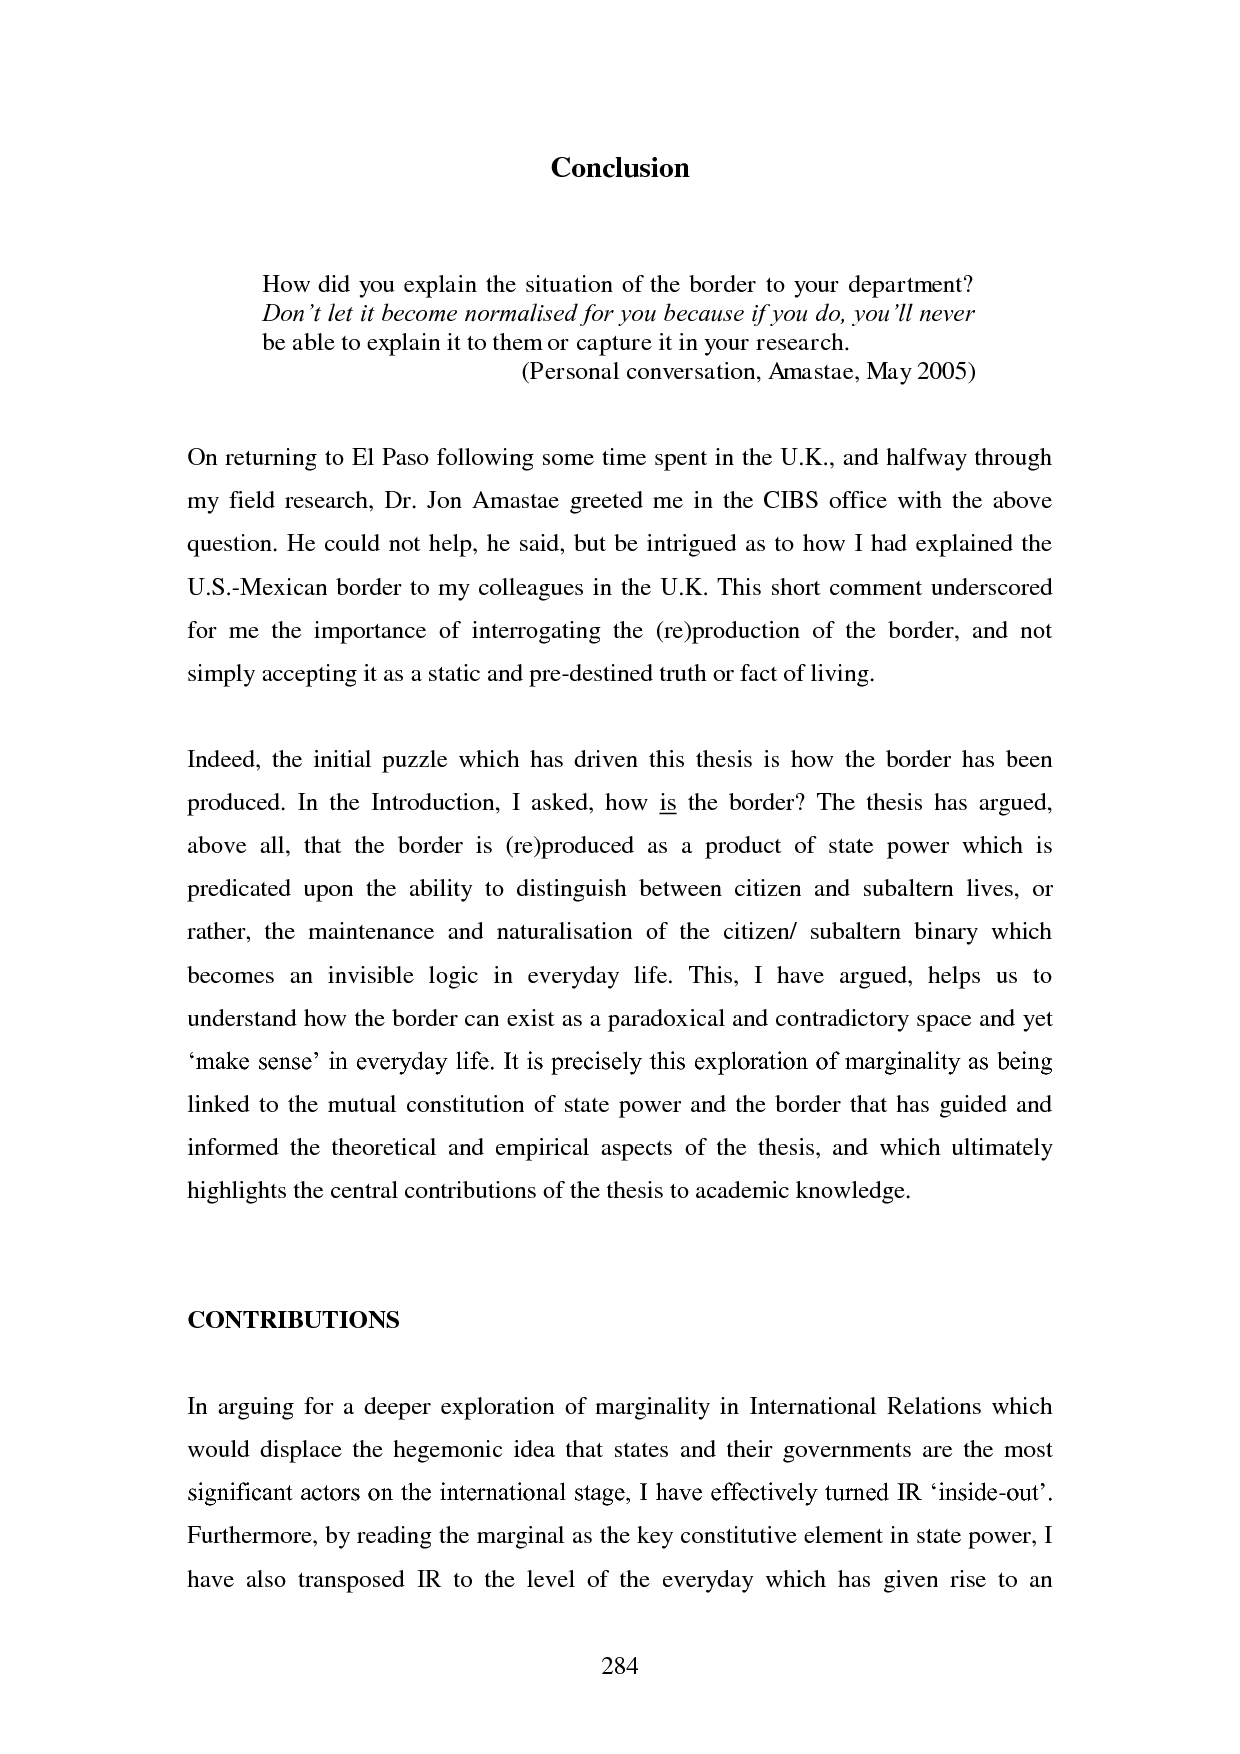 003 Research Paper Pdf Top On Cyber Security 2018 Na Tagalog Scientific Format Full